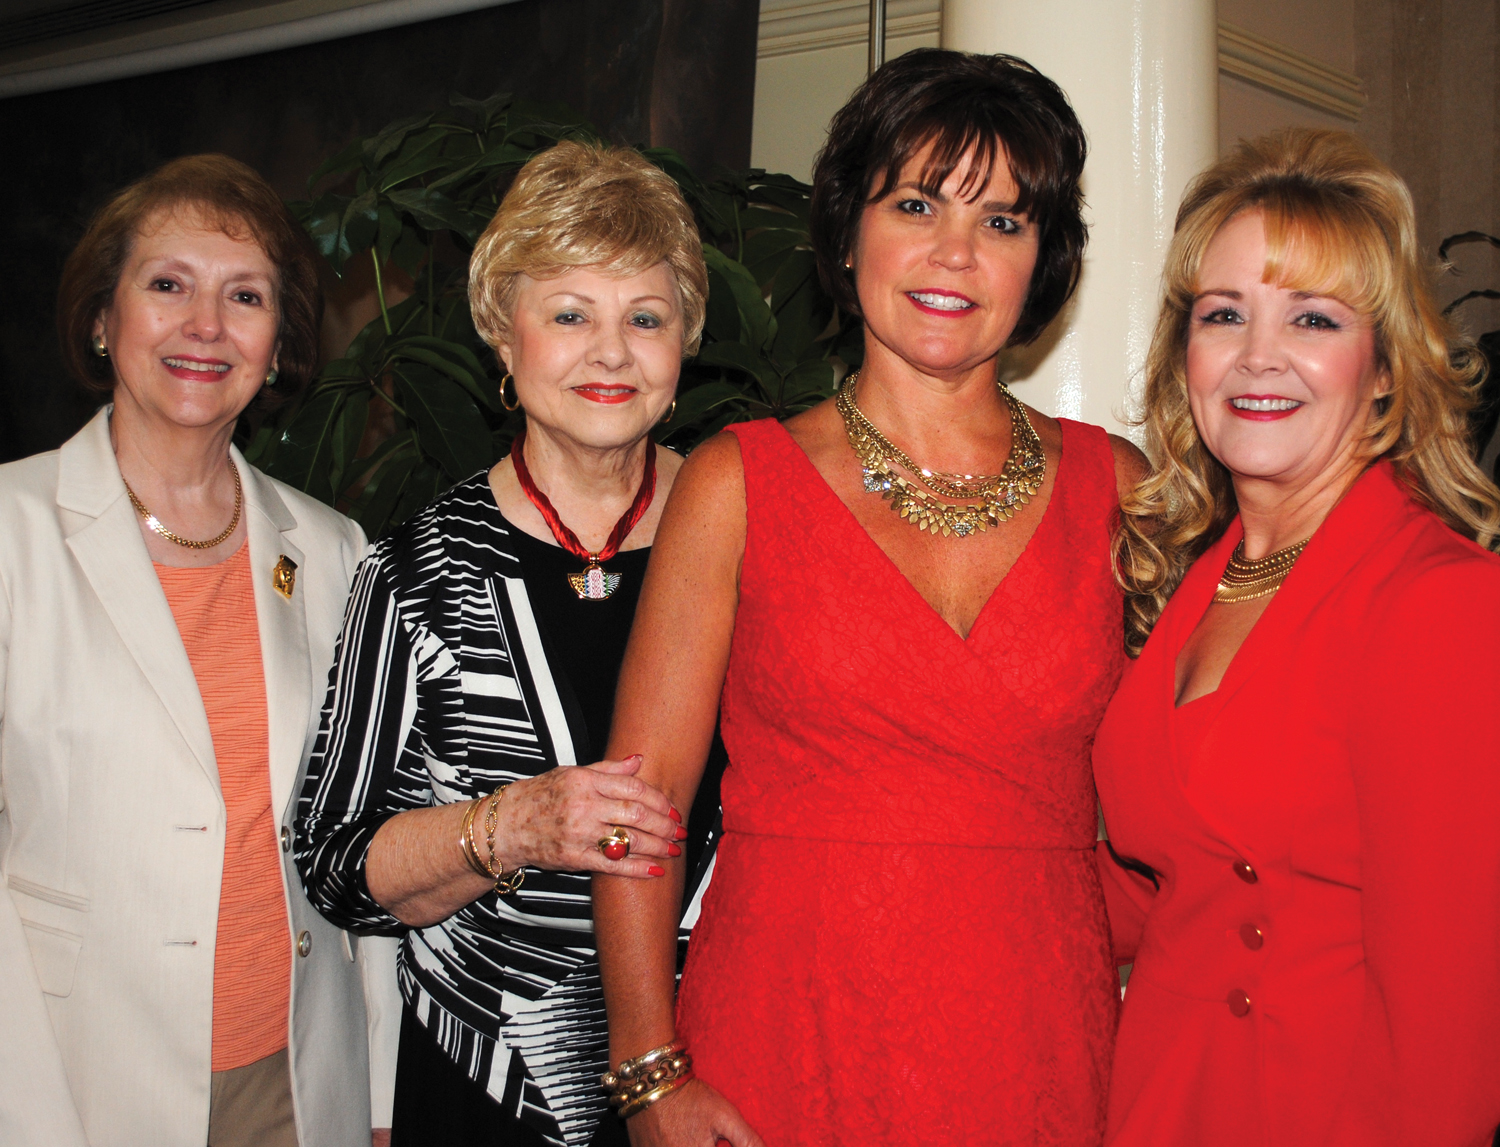 Jackie Daley, Virginia Hosea, Betsy Salbilla and Ann Brady, from left, stop for a photo as they arrive at Bay Oaks for the BOWA style show luncheon.